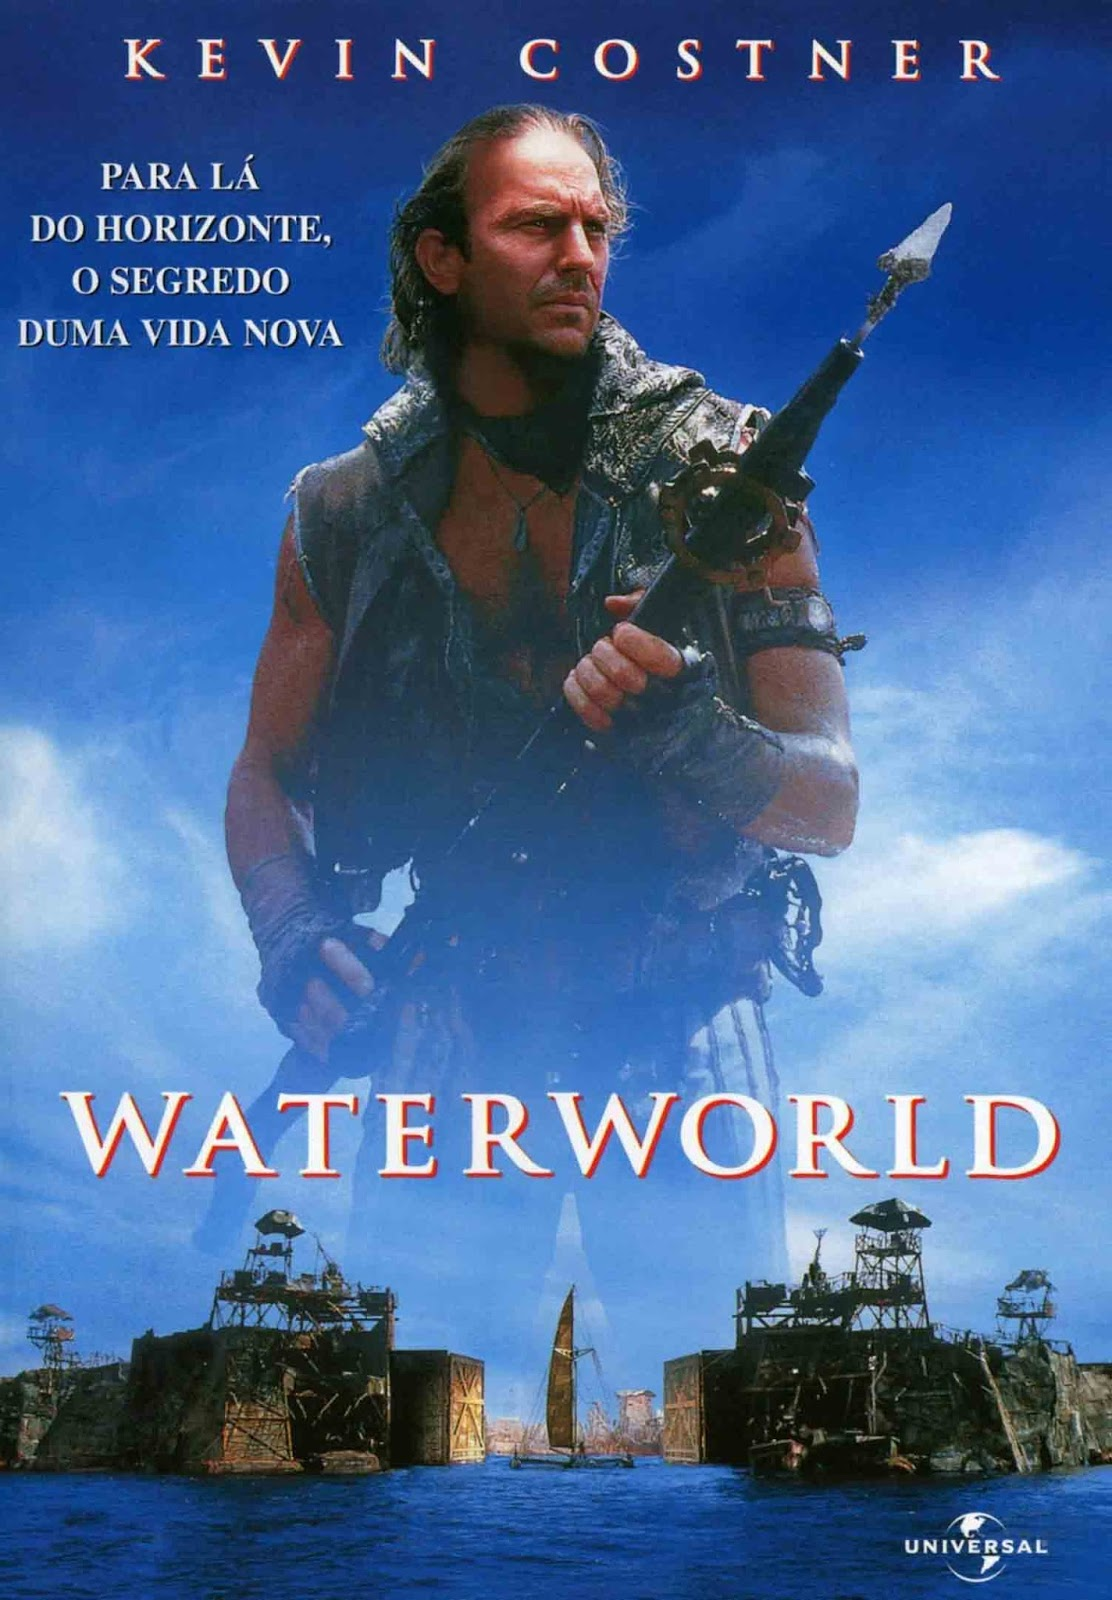 Waterworld: O Segredo das Águas Torrent – Blu-ray Rip 720p Dublado (1995)